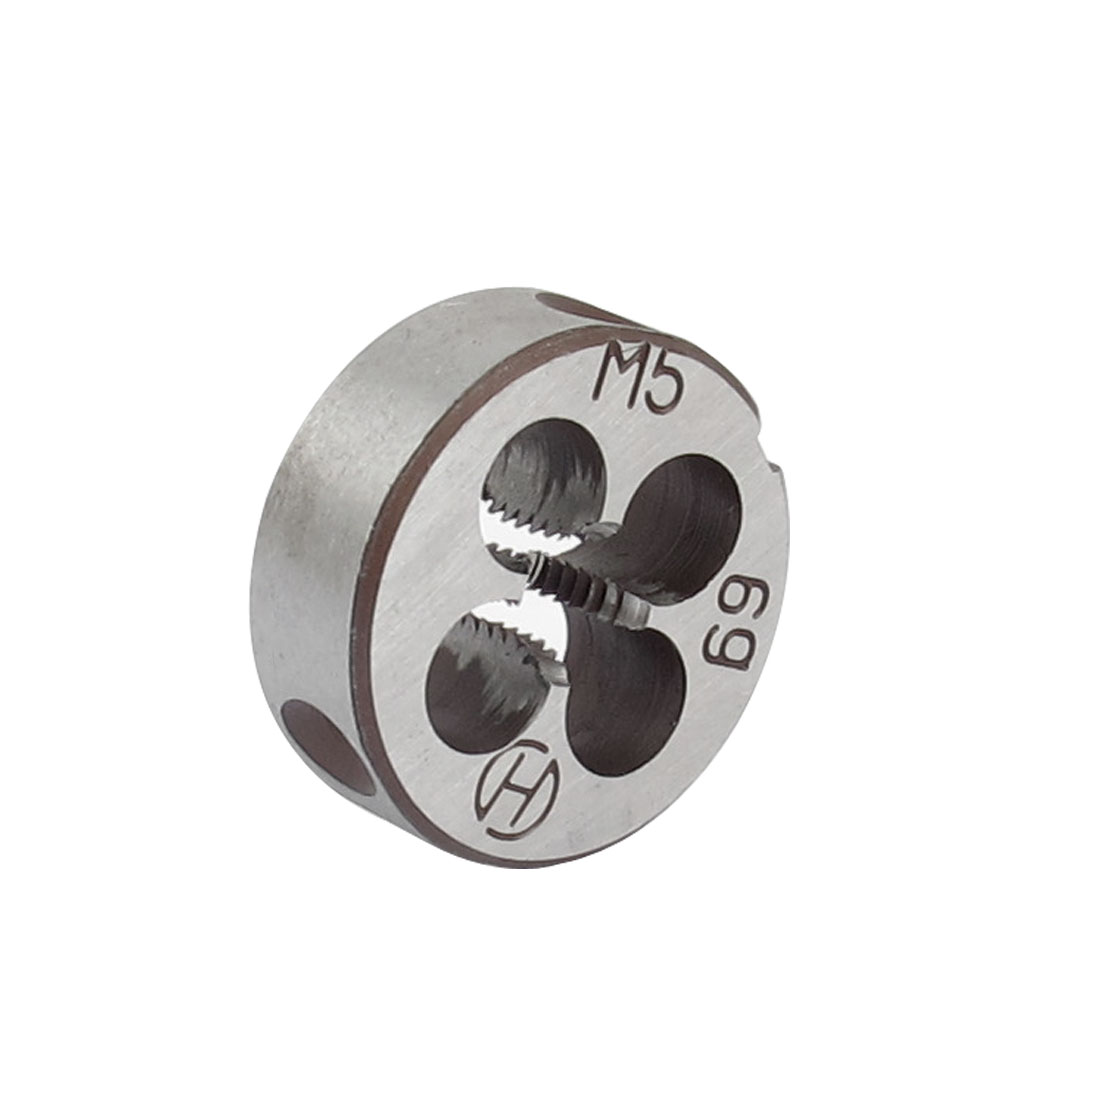 20mm Outside Dia M5 Coarse Thread Cutting Tool Round Die Gray